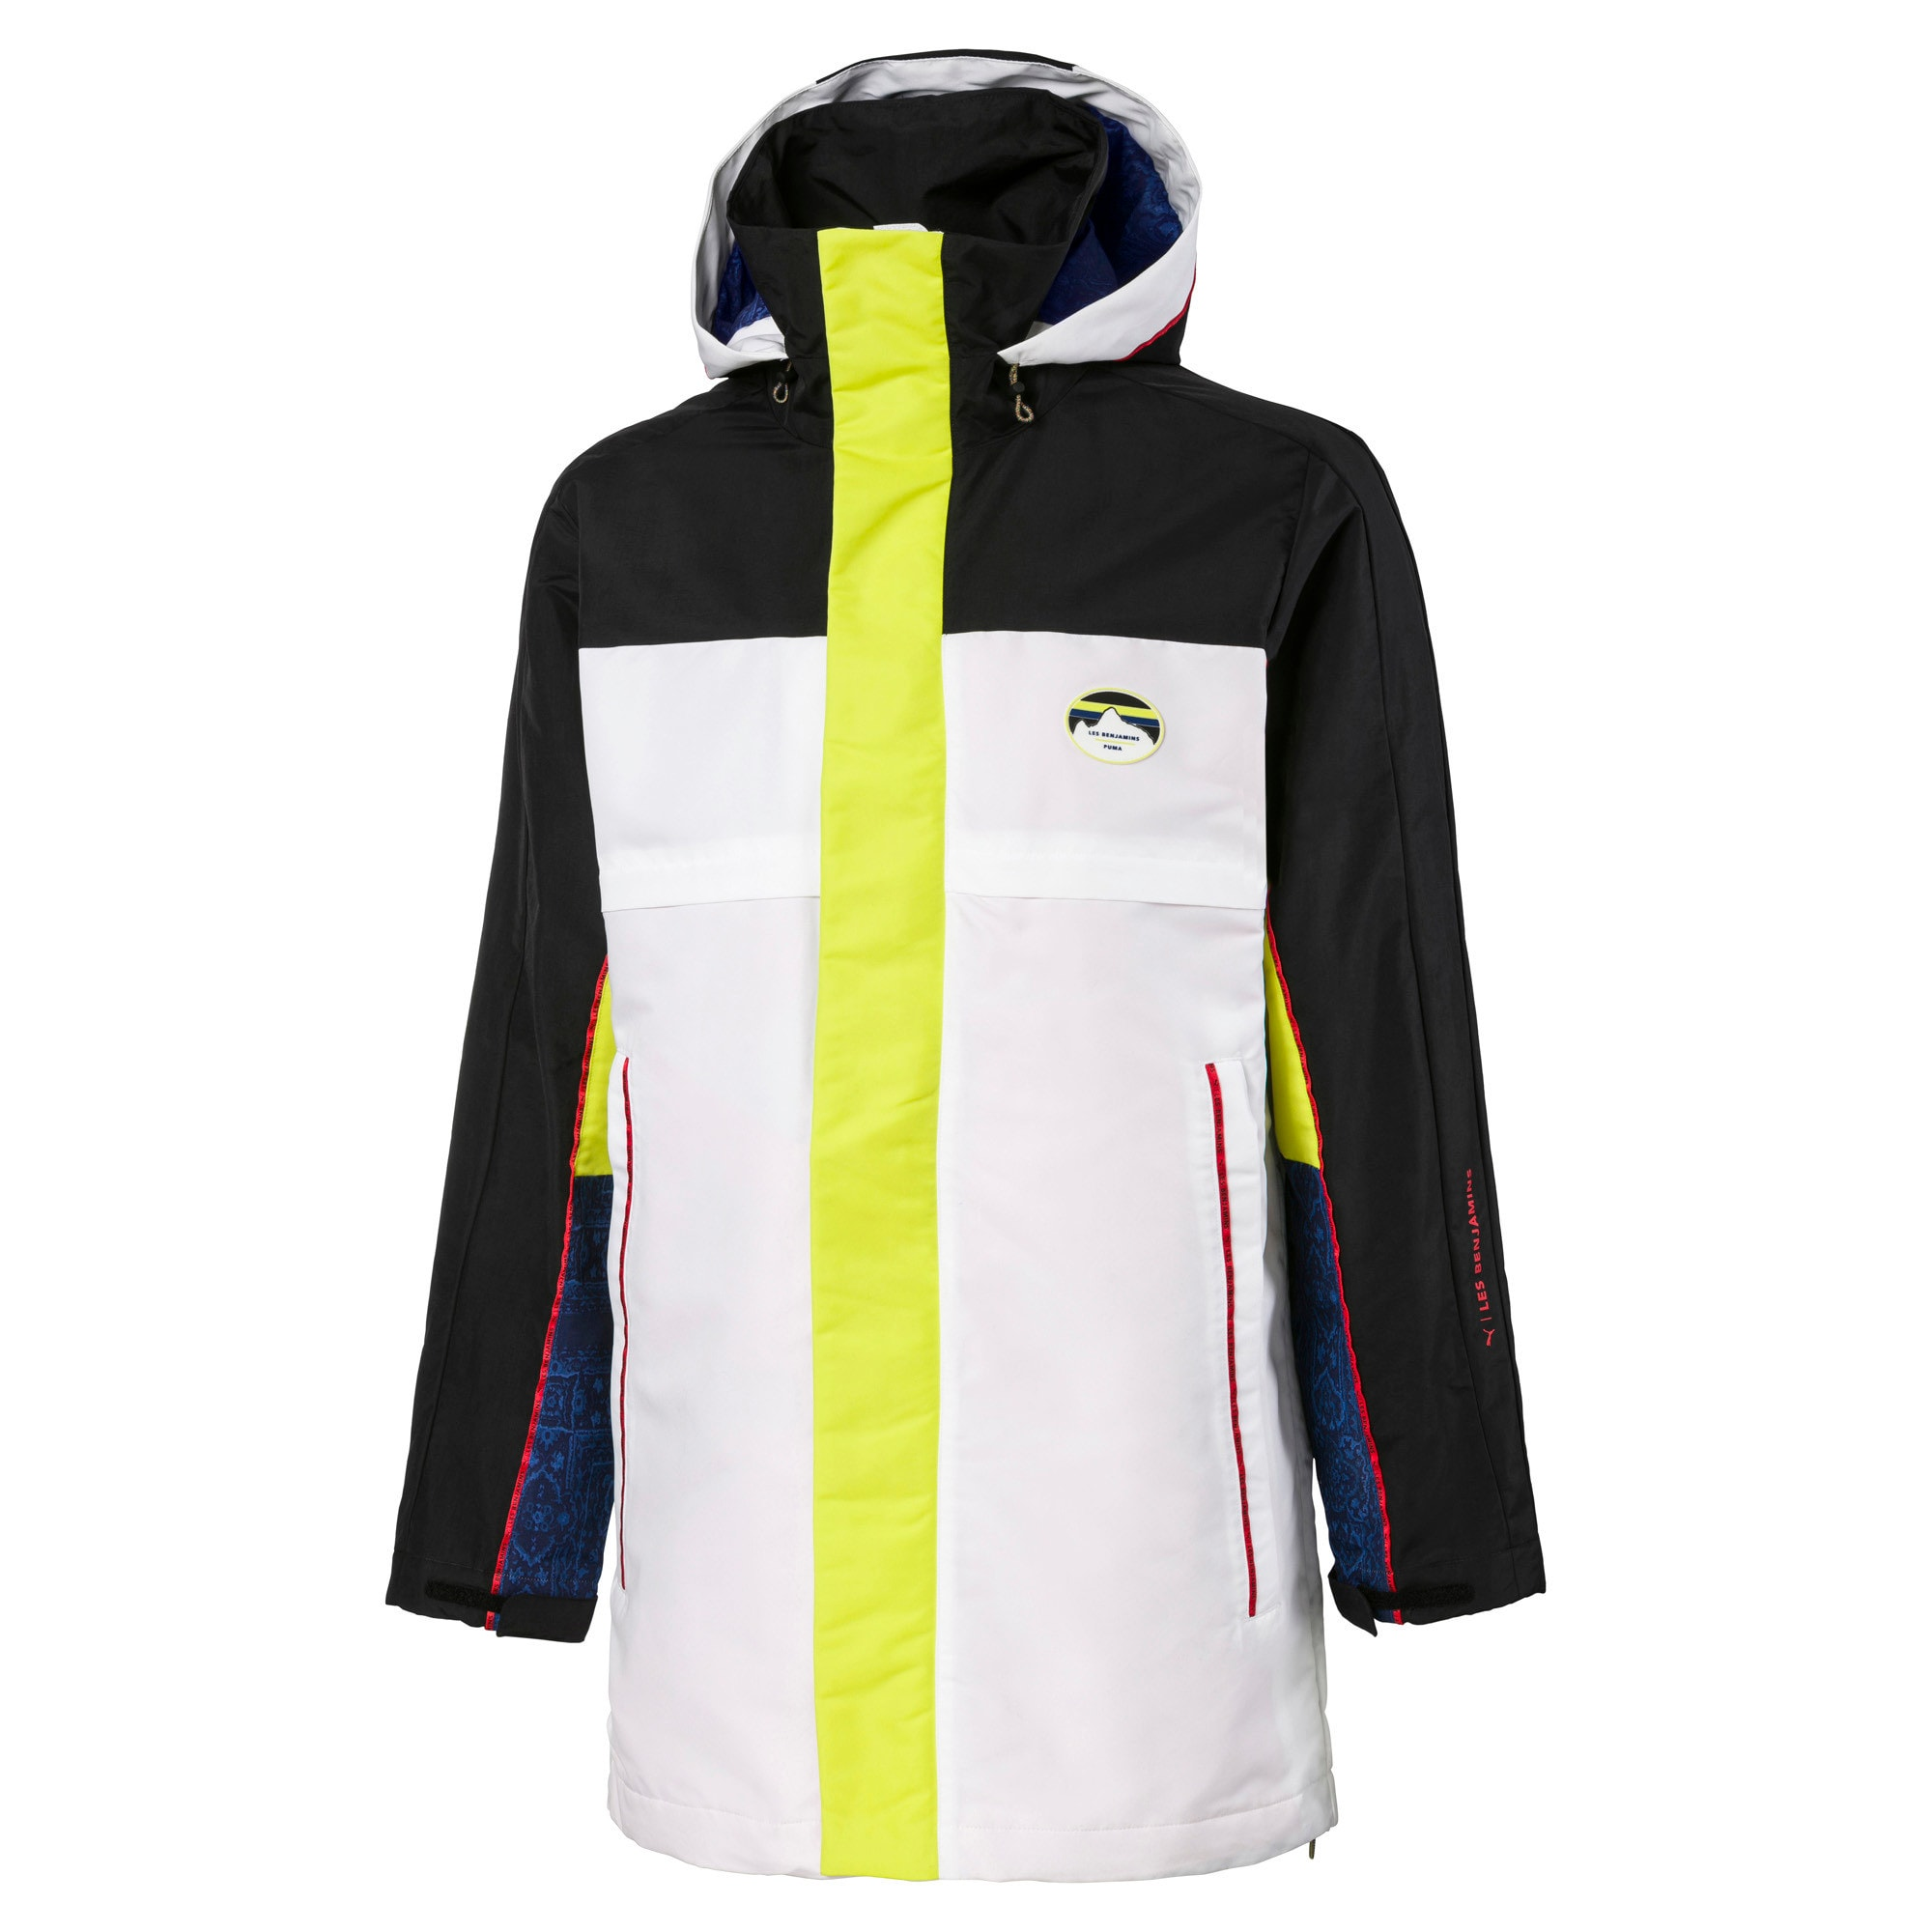 Thumbnail 1 of PUMA x LES BENJAMINS Storm Woven Men's Jacket, Puma White, medium